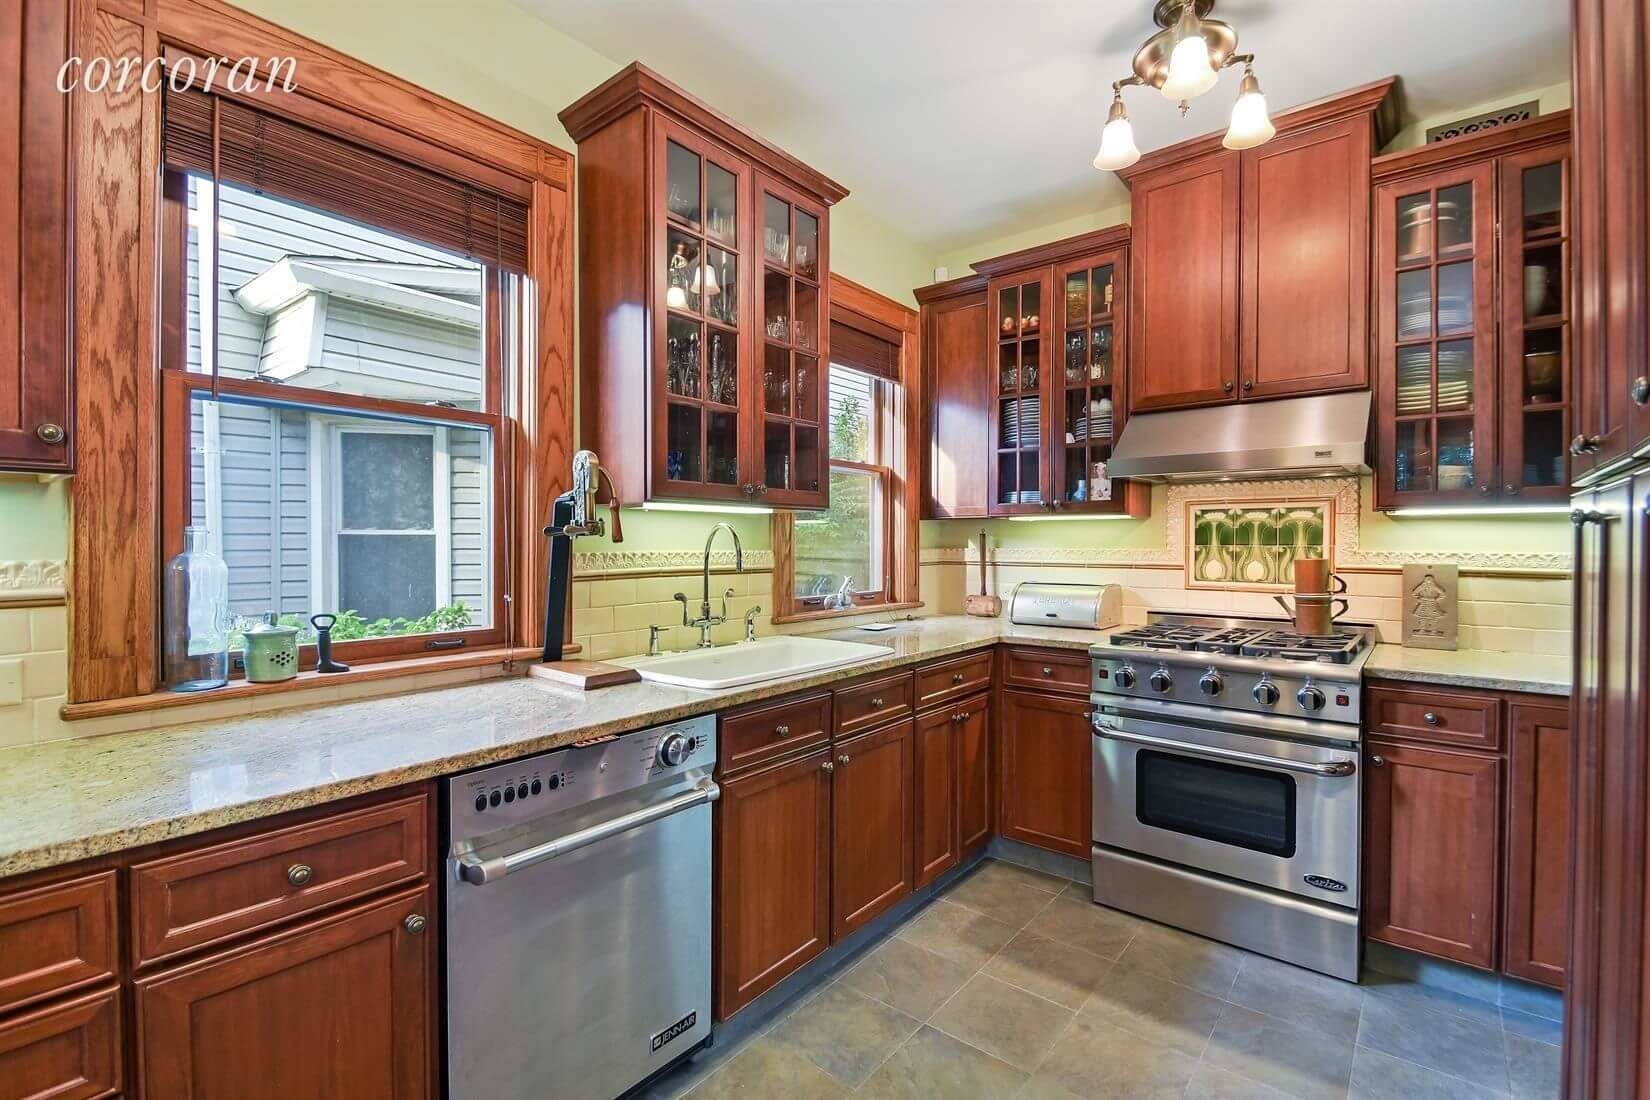 Brooklyn Homes for Sale in West Midwood at 756 Argyle Road